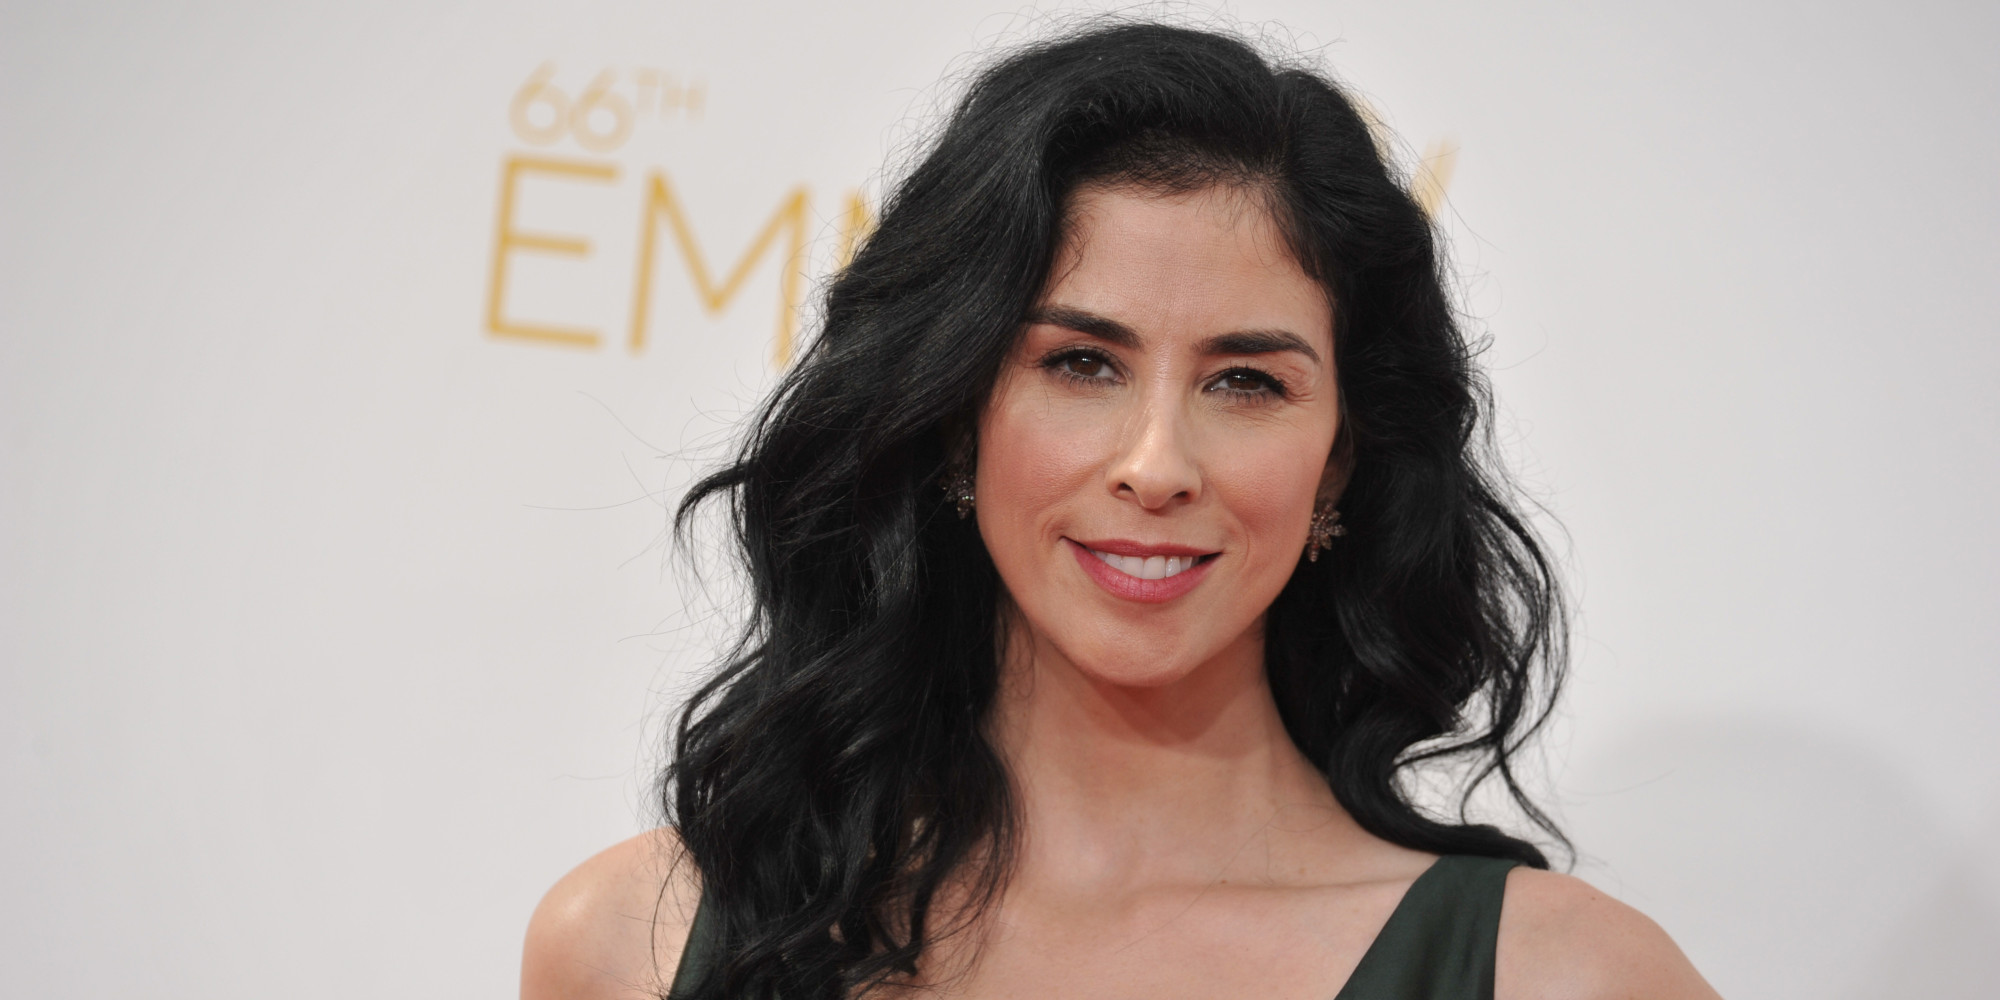 Sarah Silverman earned a  million dollar salary, leaving the net worth at 10 million in 2017